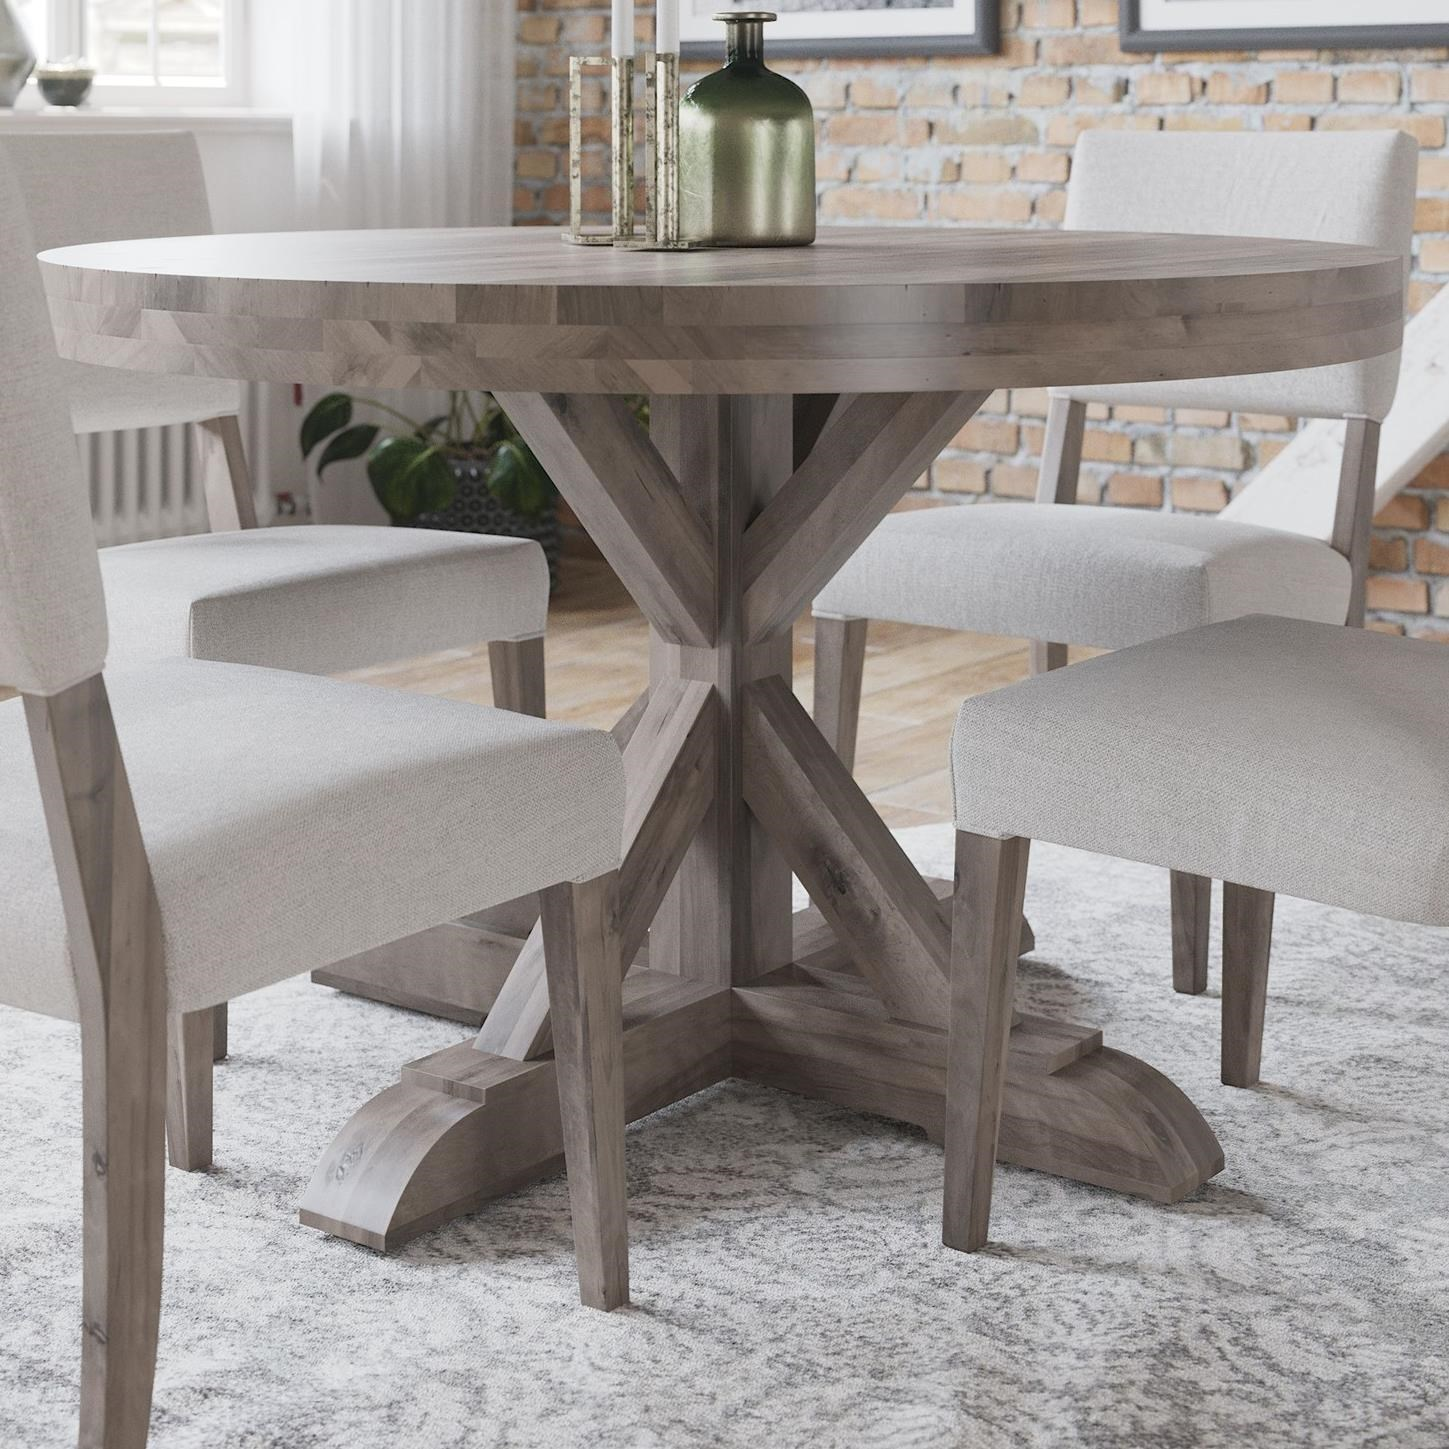 Loft - Custom Dining Customizable Round Table by Canadel at Dinette Depot